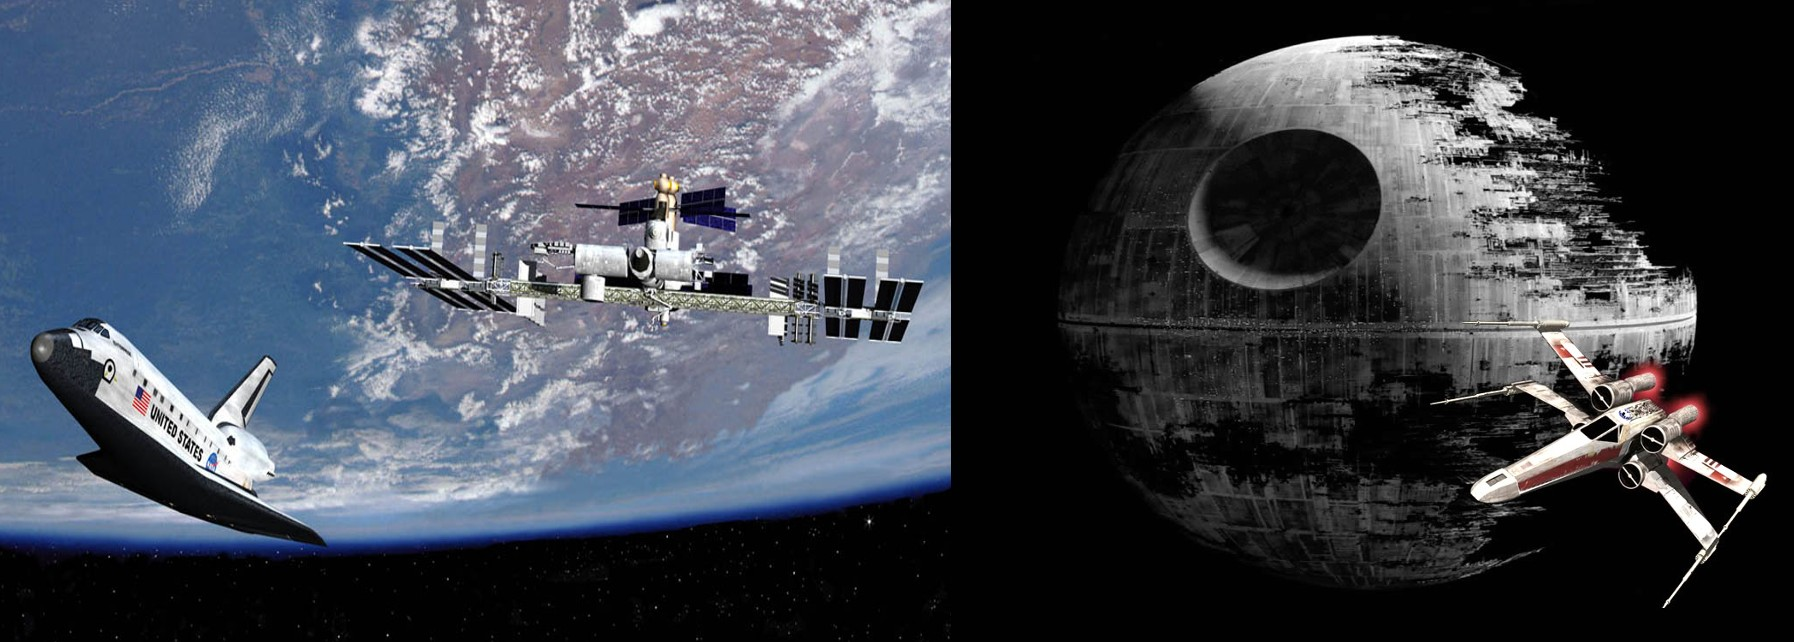 Deathstar vs ISS